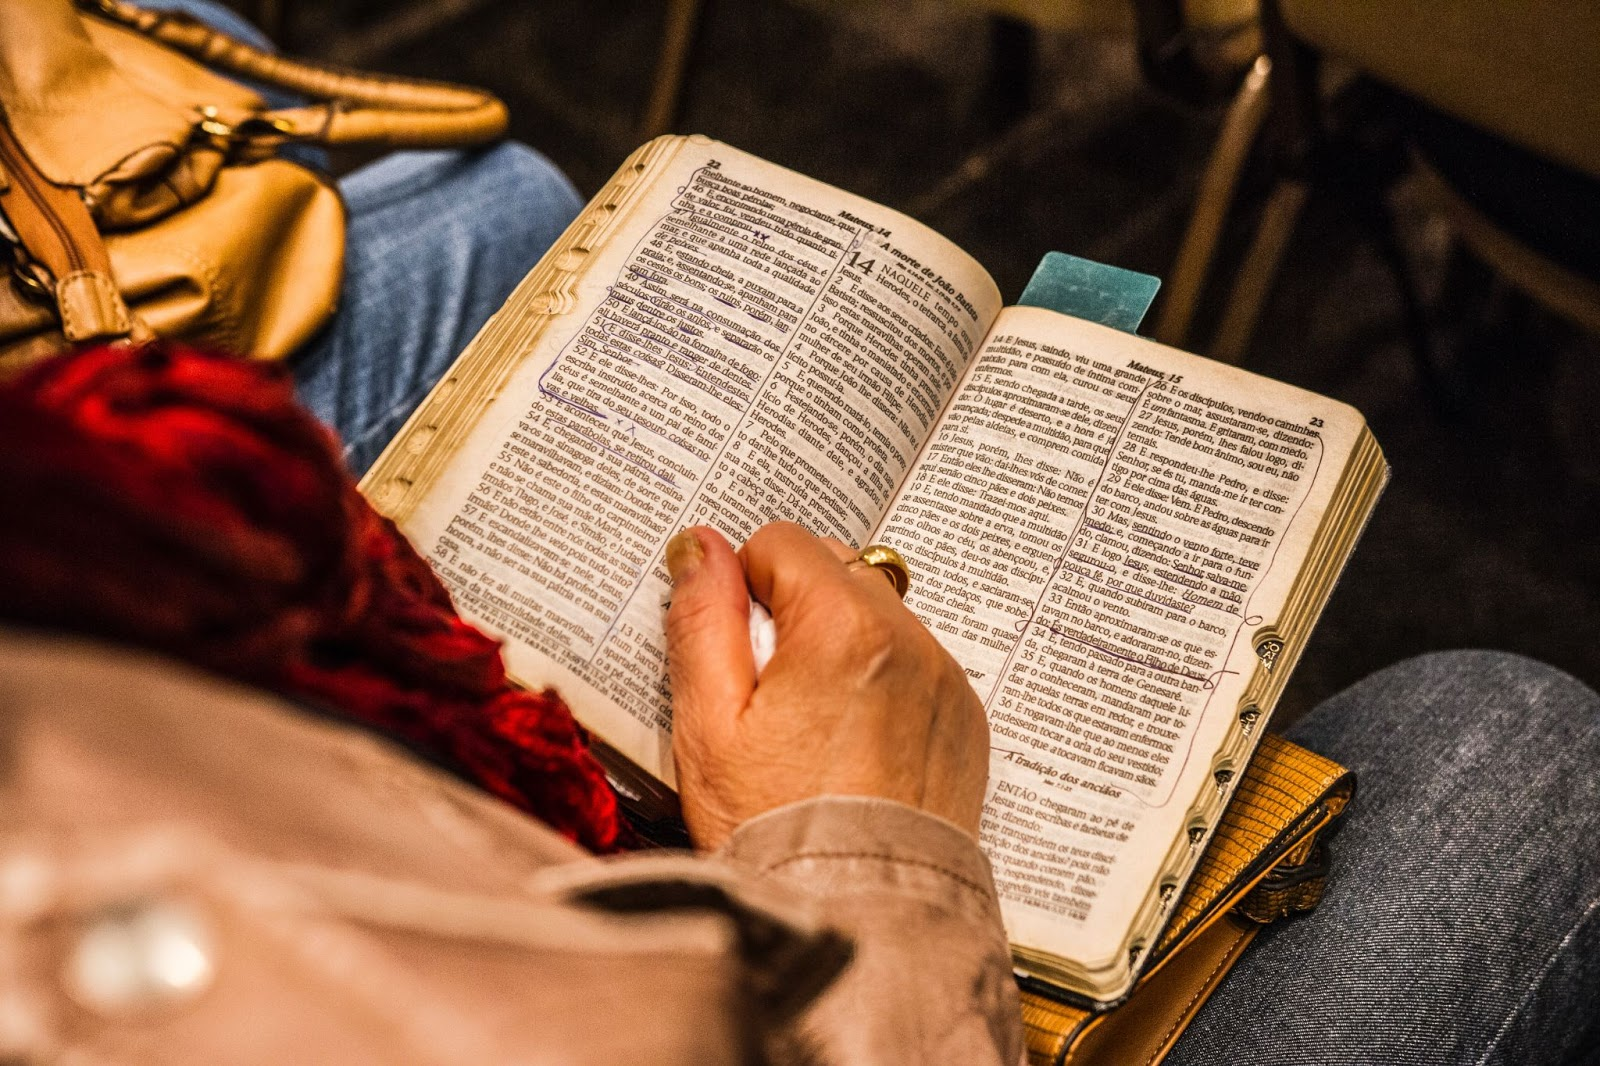 Person reading scriptures that are marked up.